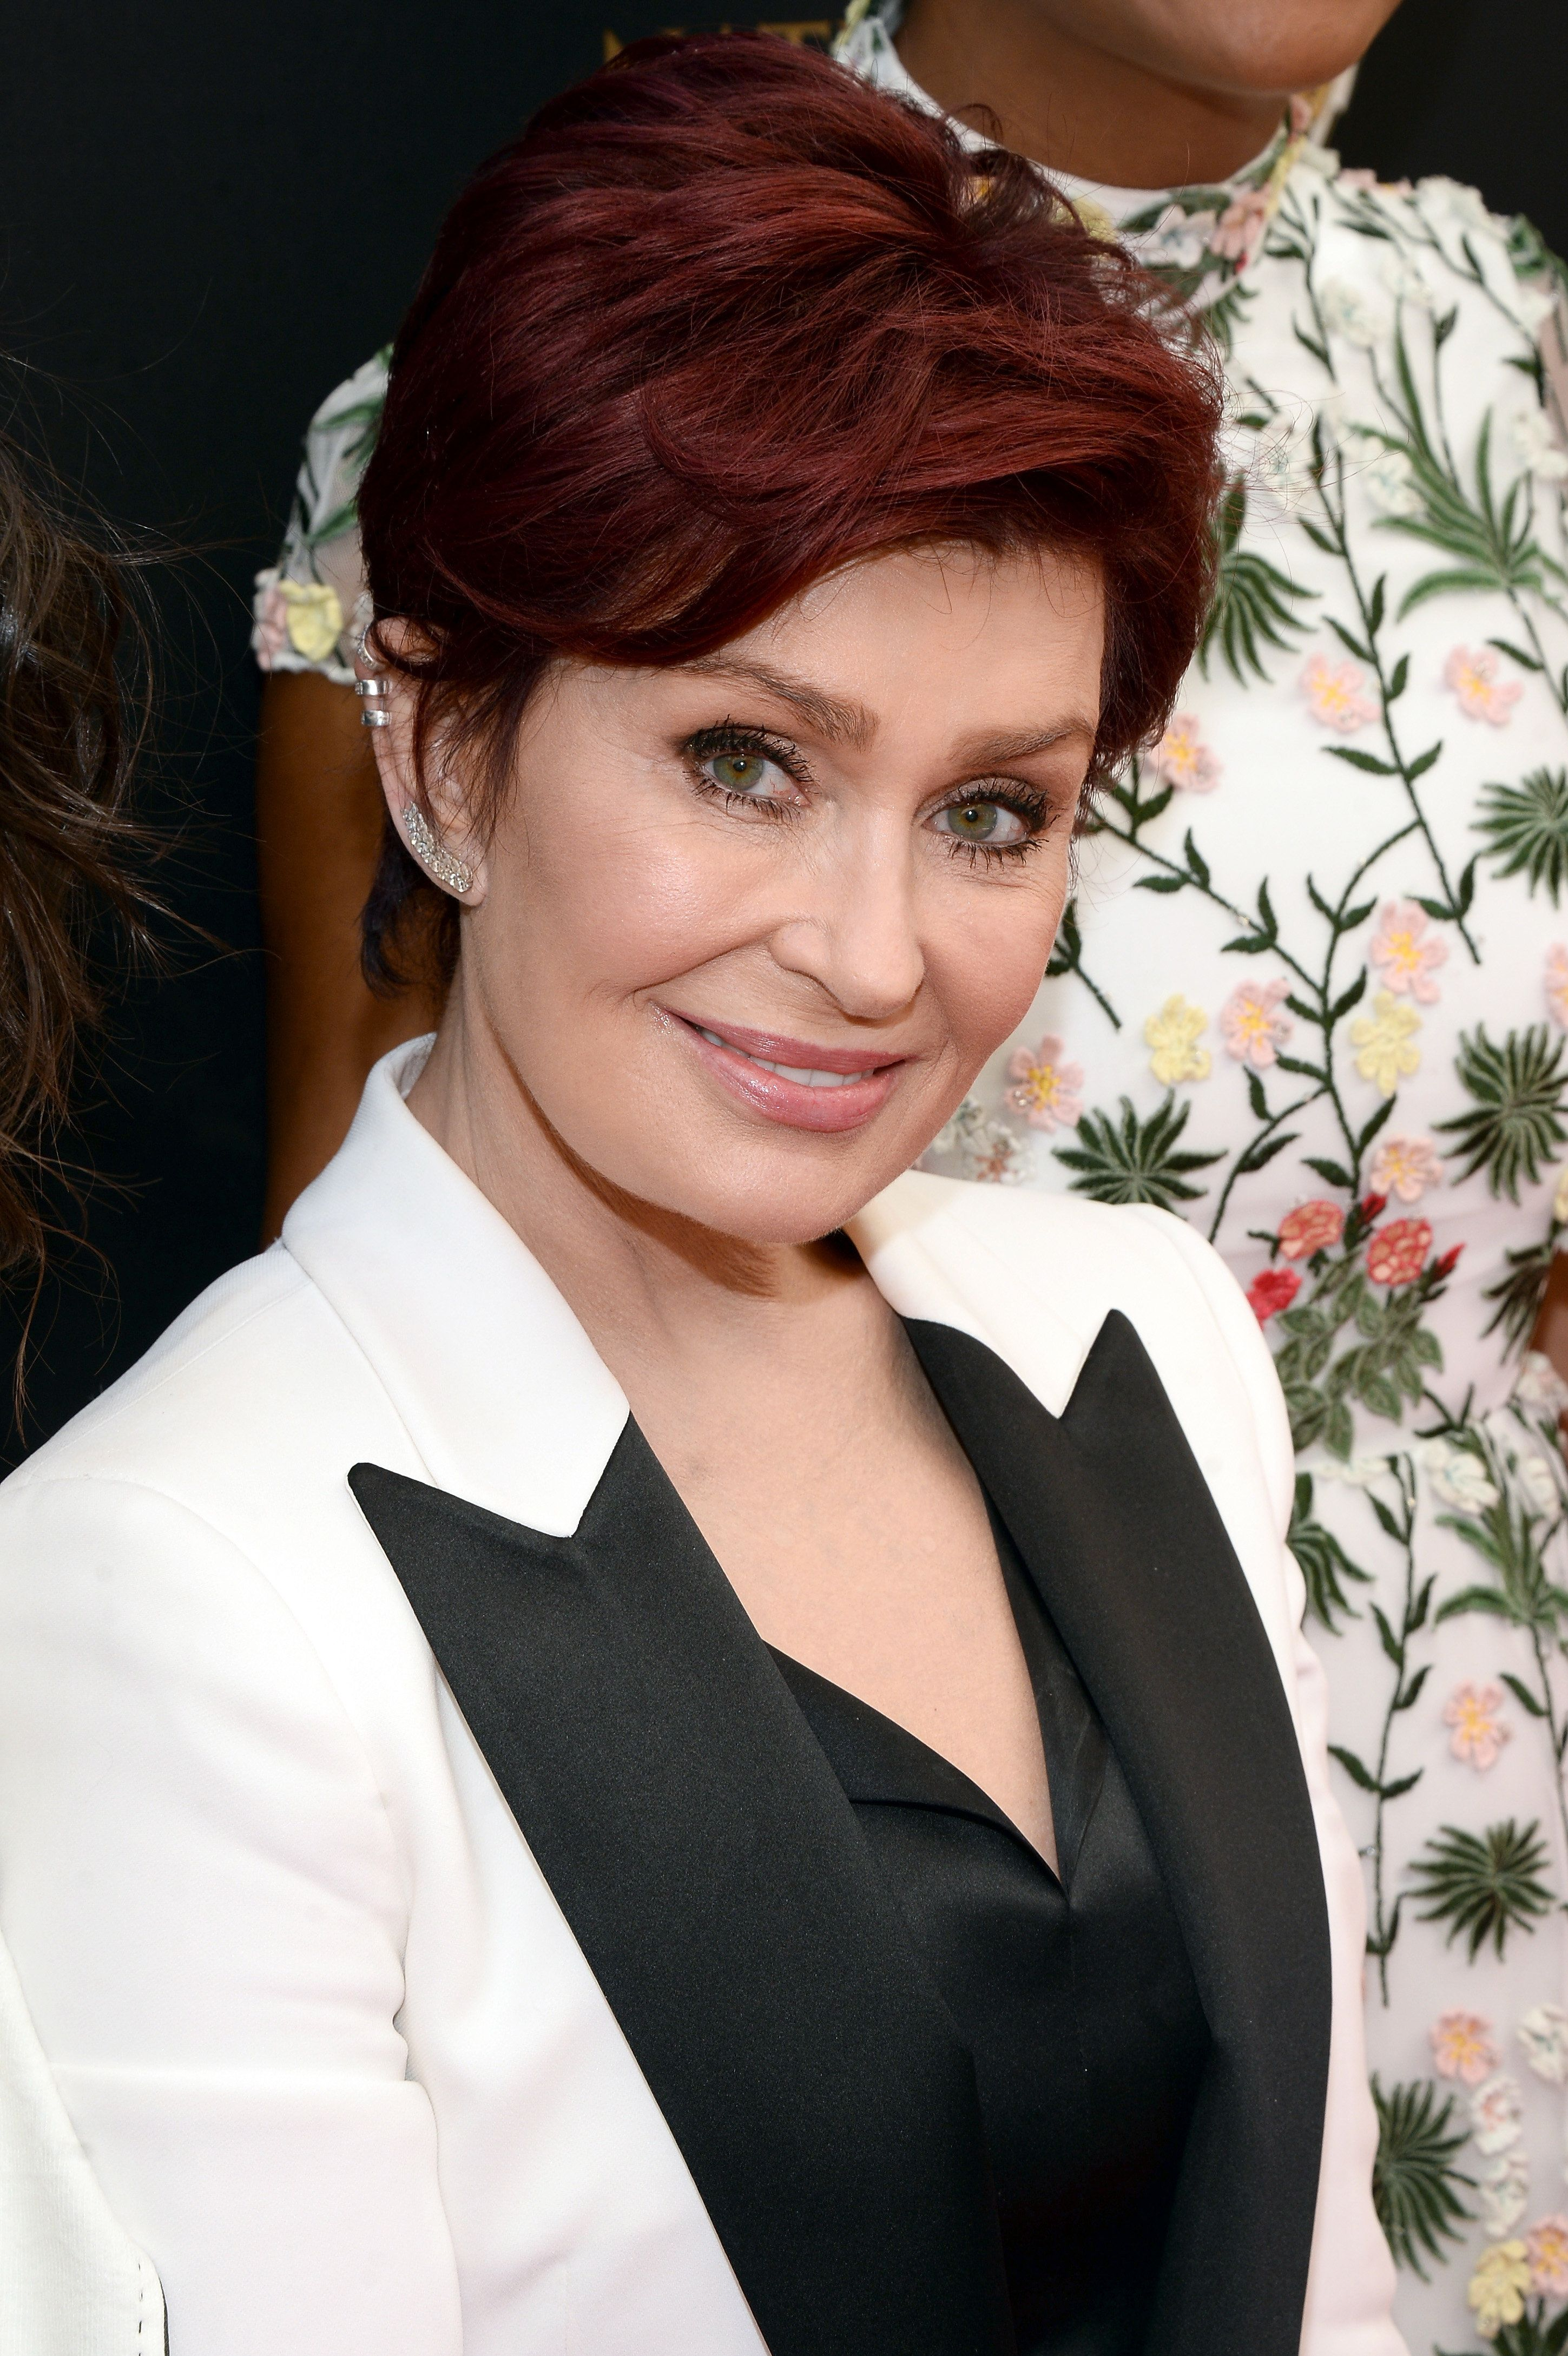 LOS ANGELES, CA - MAY 01:  TV personality Sharon Osbourne walks the red carpet at the 43rd Annual Daytime Emmy Awards at the Westin Bonaventure Hotel on May 1, 2016 in Los Angeles, California.  (Photo by Matt Winkelmeyer/Getty Images for NATAS)